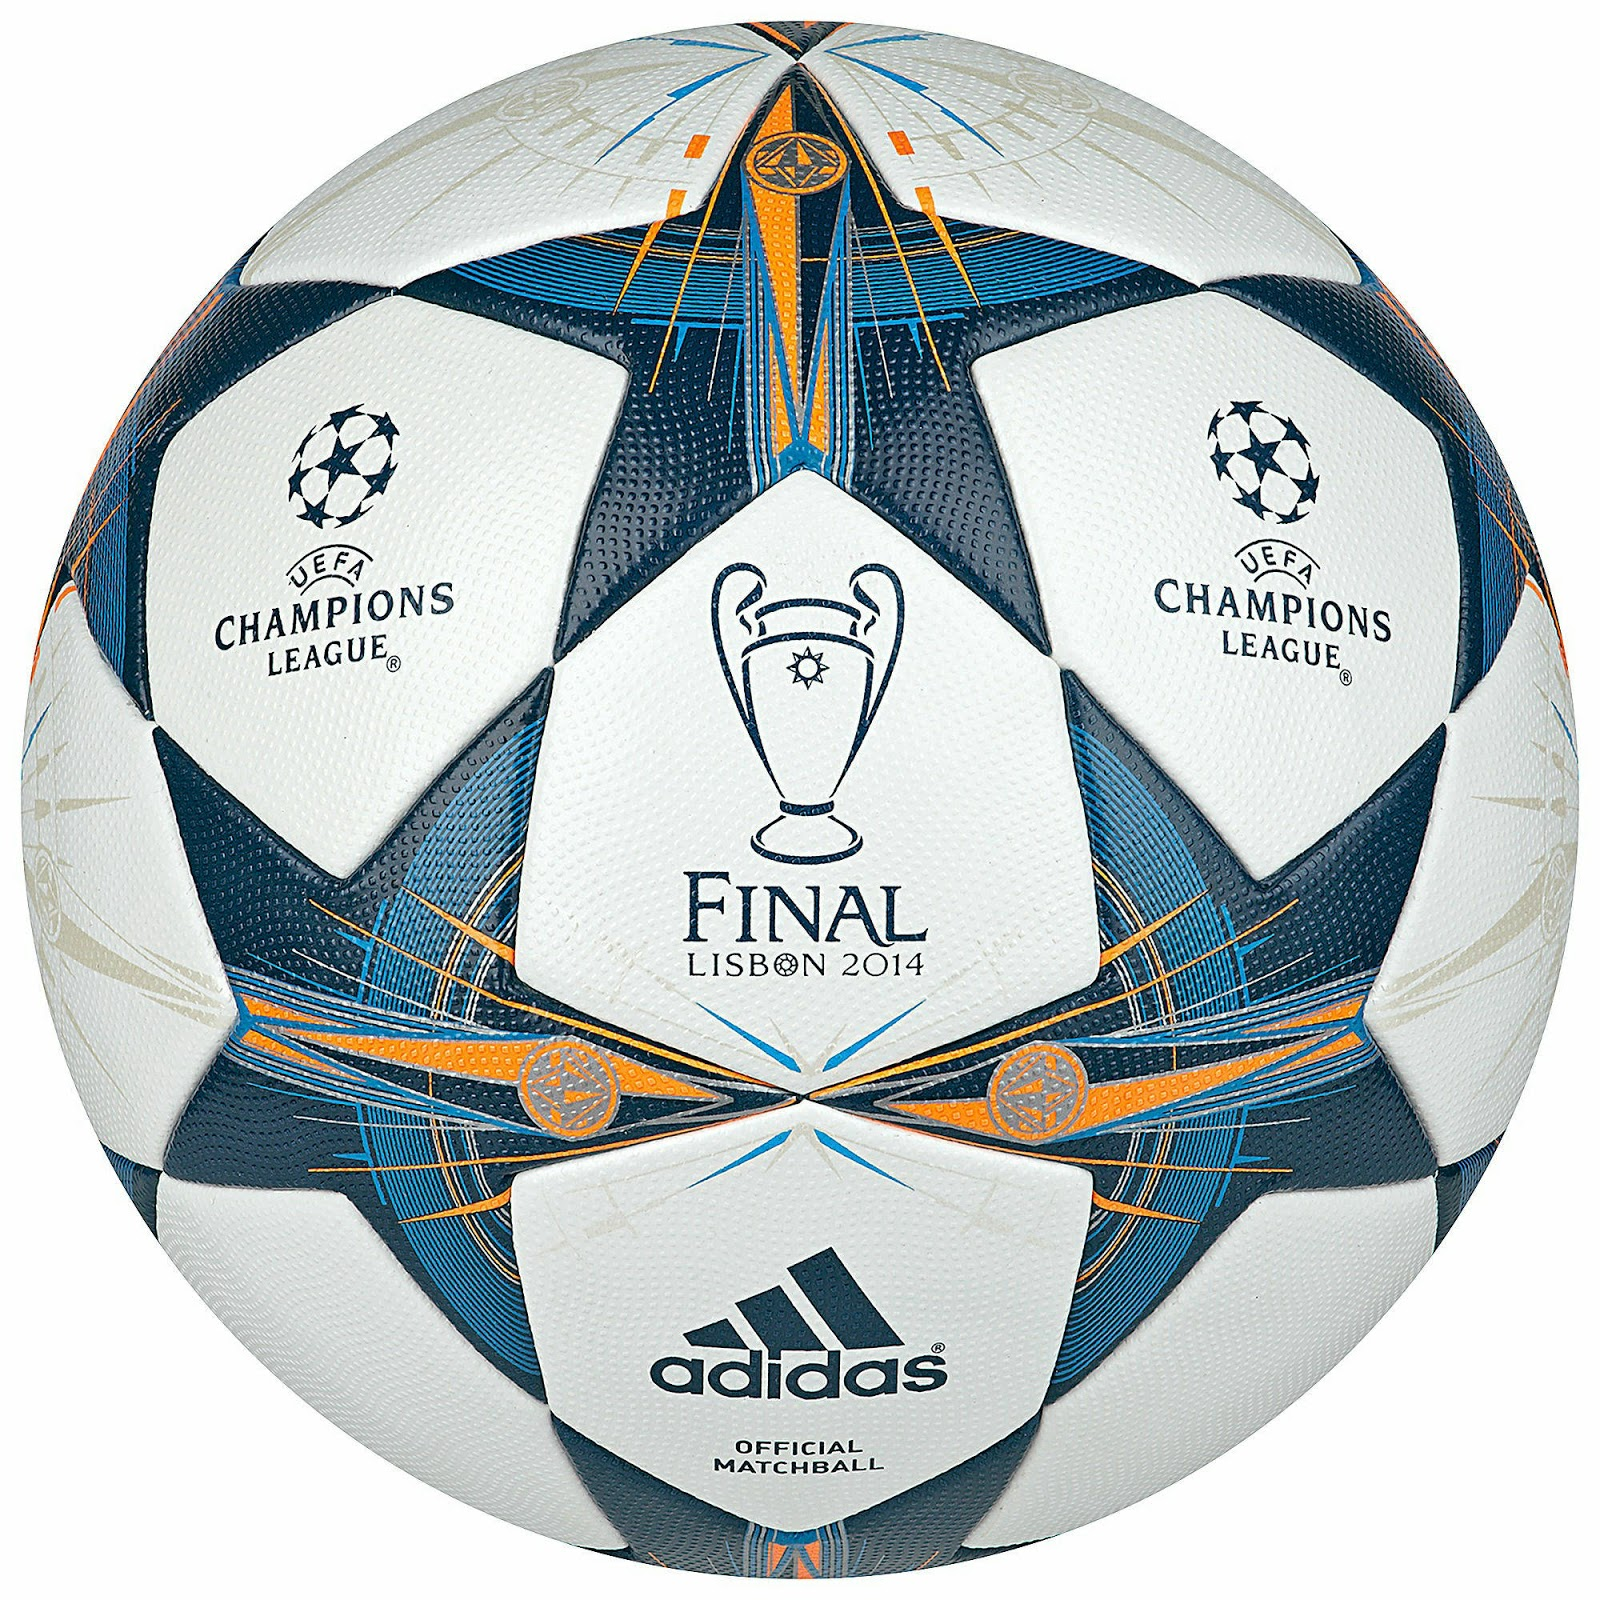 Cuadro Champions League 2014 Adidas 2014 Champions League Finale 14 Lissabon Omb